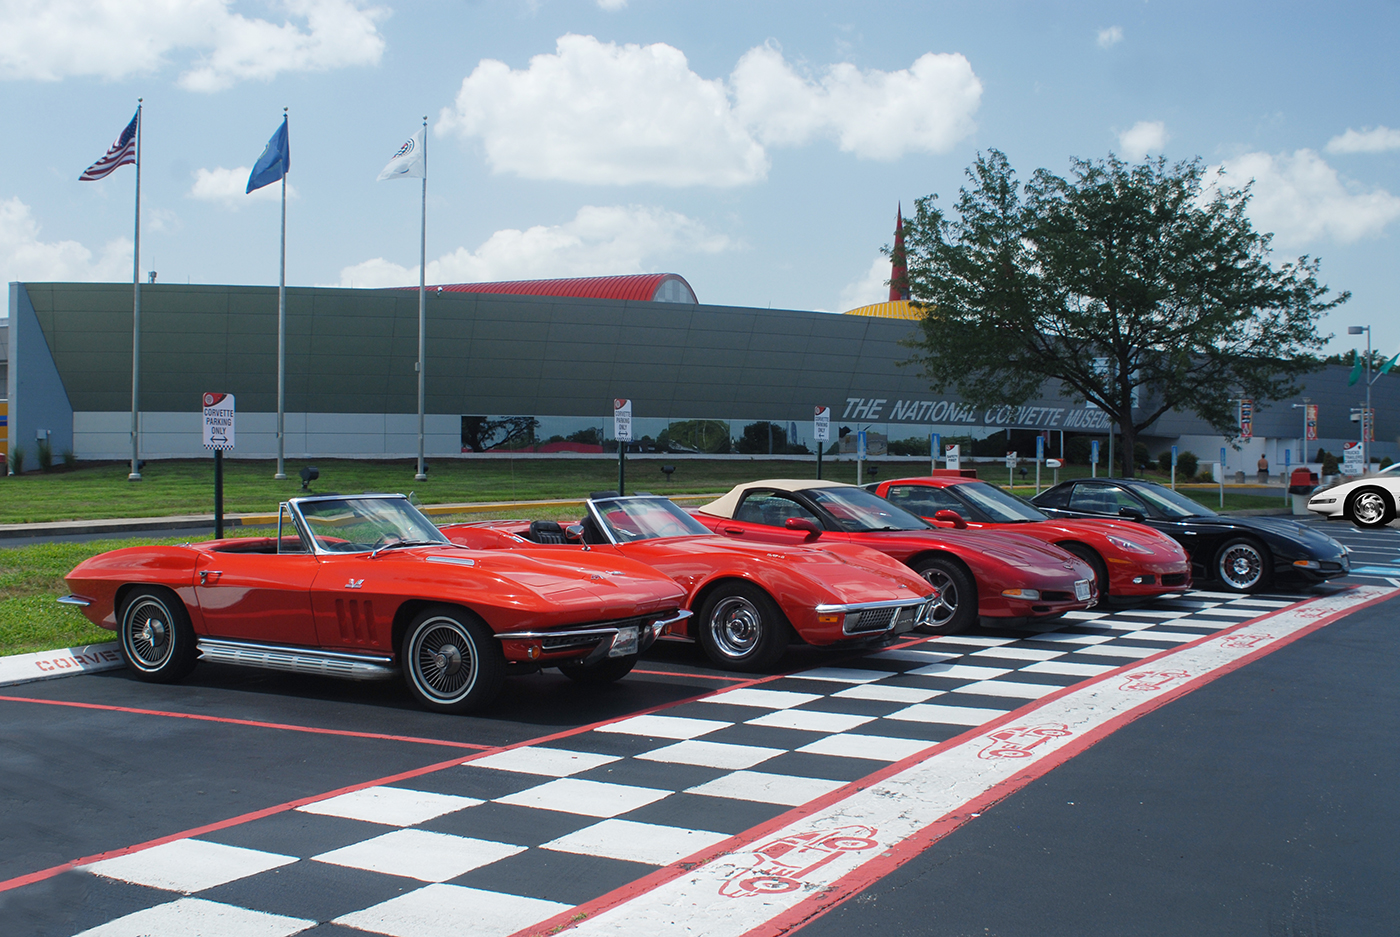 30 2016 all day where national corvette museum 350 corvette dr bowling. Cars Review. Best American Auto & Cars Review